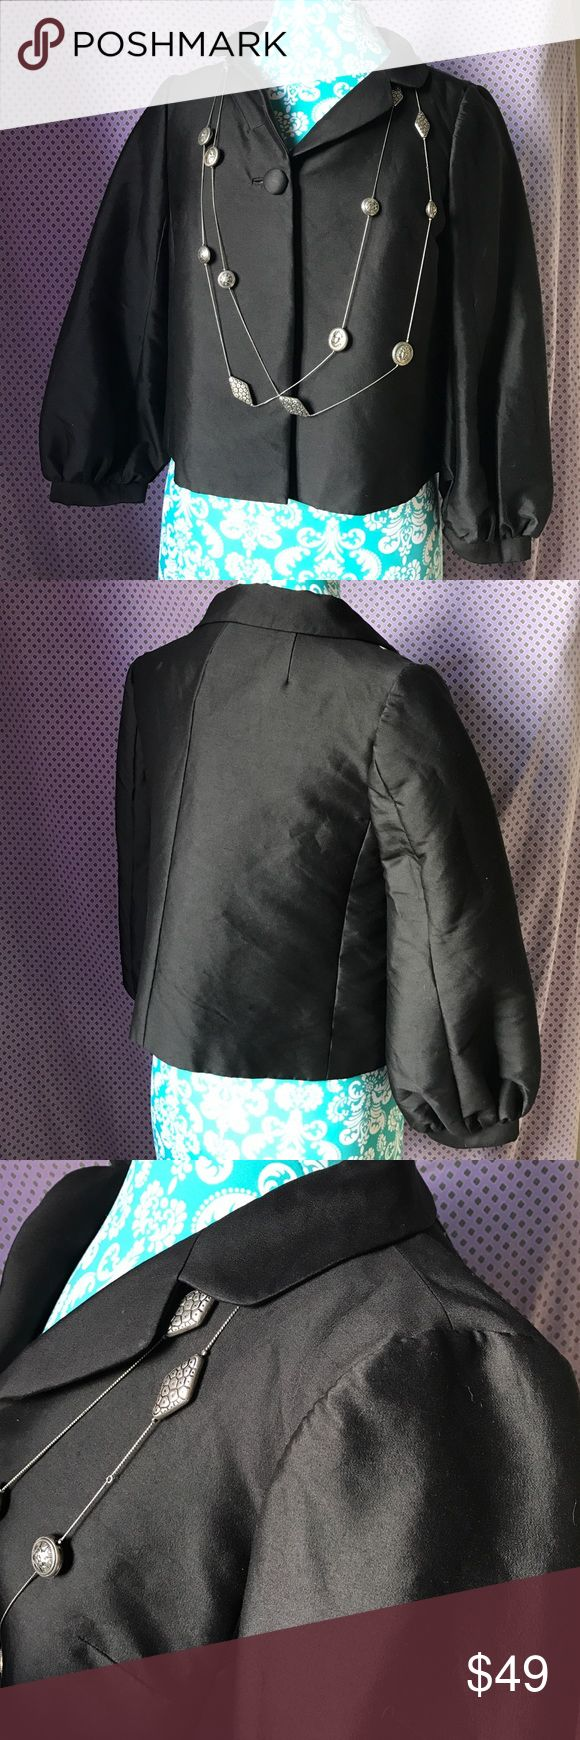 Banana R. Opera Structure Silk Architecture Blazer Excellent, new condition. No stains rips snags or holes. Well fit. Bus starts. Fully lined with polkadot inside. Three-quarter sleeve. Bell sleeve with gathers. 64% silk and 36% wool outer fabric. Inside lining is 50% nylon and 50% acetate. Artsy. Vamp. Museum gear. Professional work suit separate. Kitty cat Lolita cover up. Artsy. Basic. Listeriosis. Cape style. Peter Pan v neck color. Single large button closure in front. OPERA nIGHt…